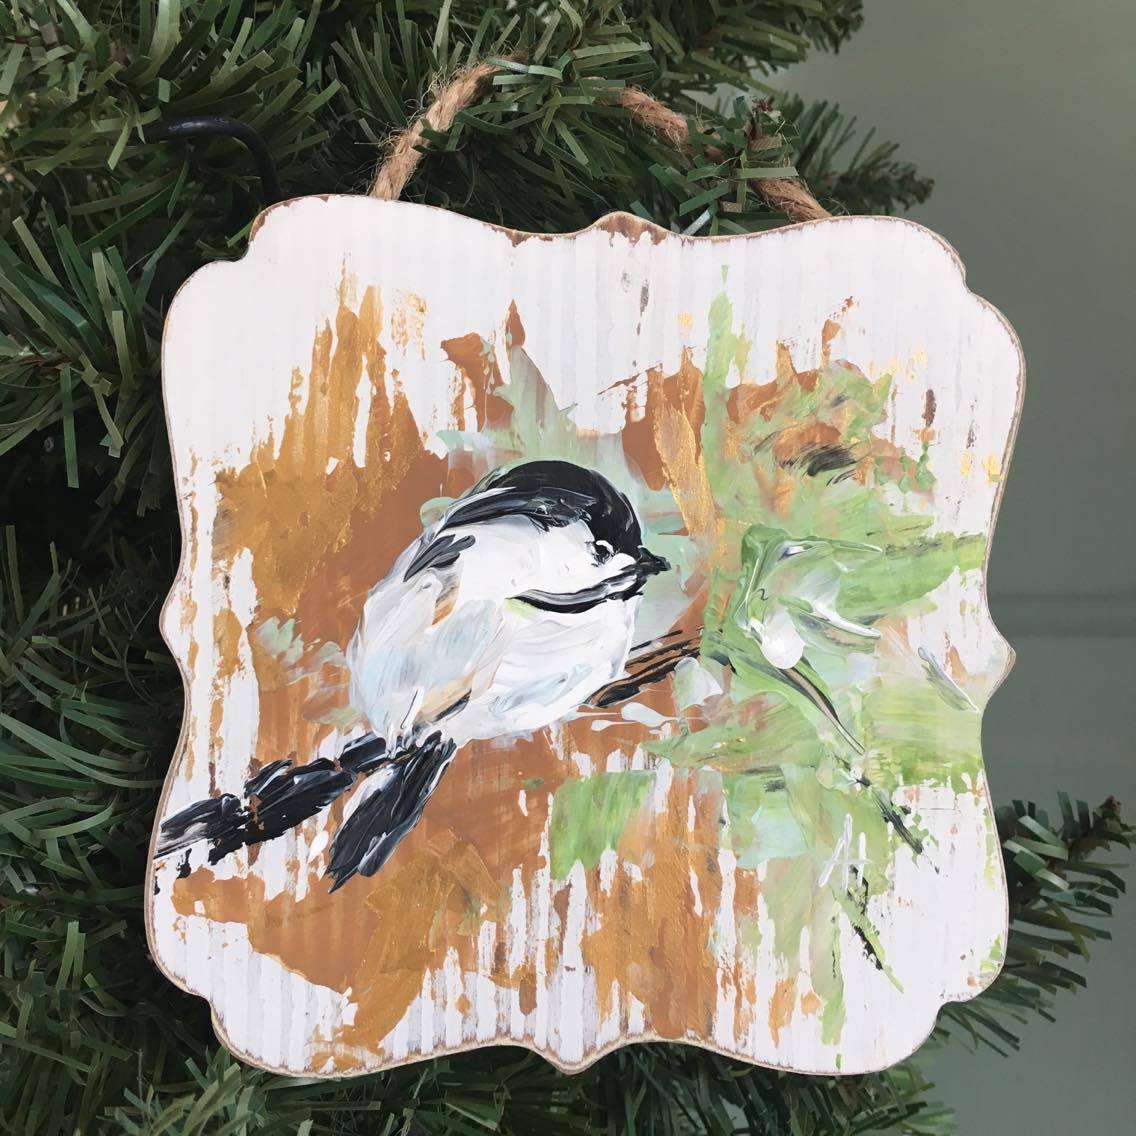 Get this one of a kind chickadee ornament exclusively at The Little Bluebird Gallery | Art by Amanda Hilburn #chickadee #bird #ornament